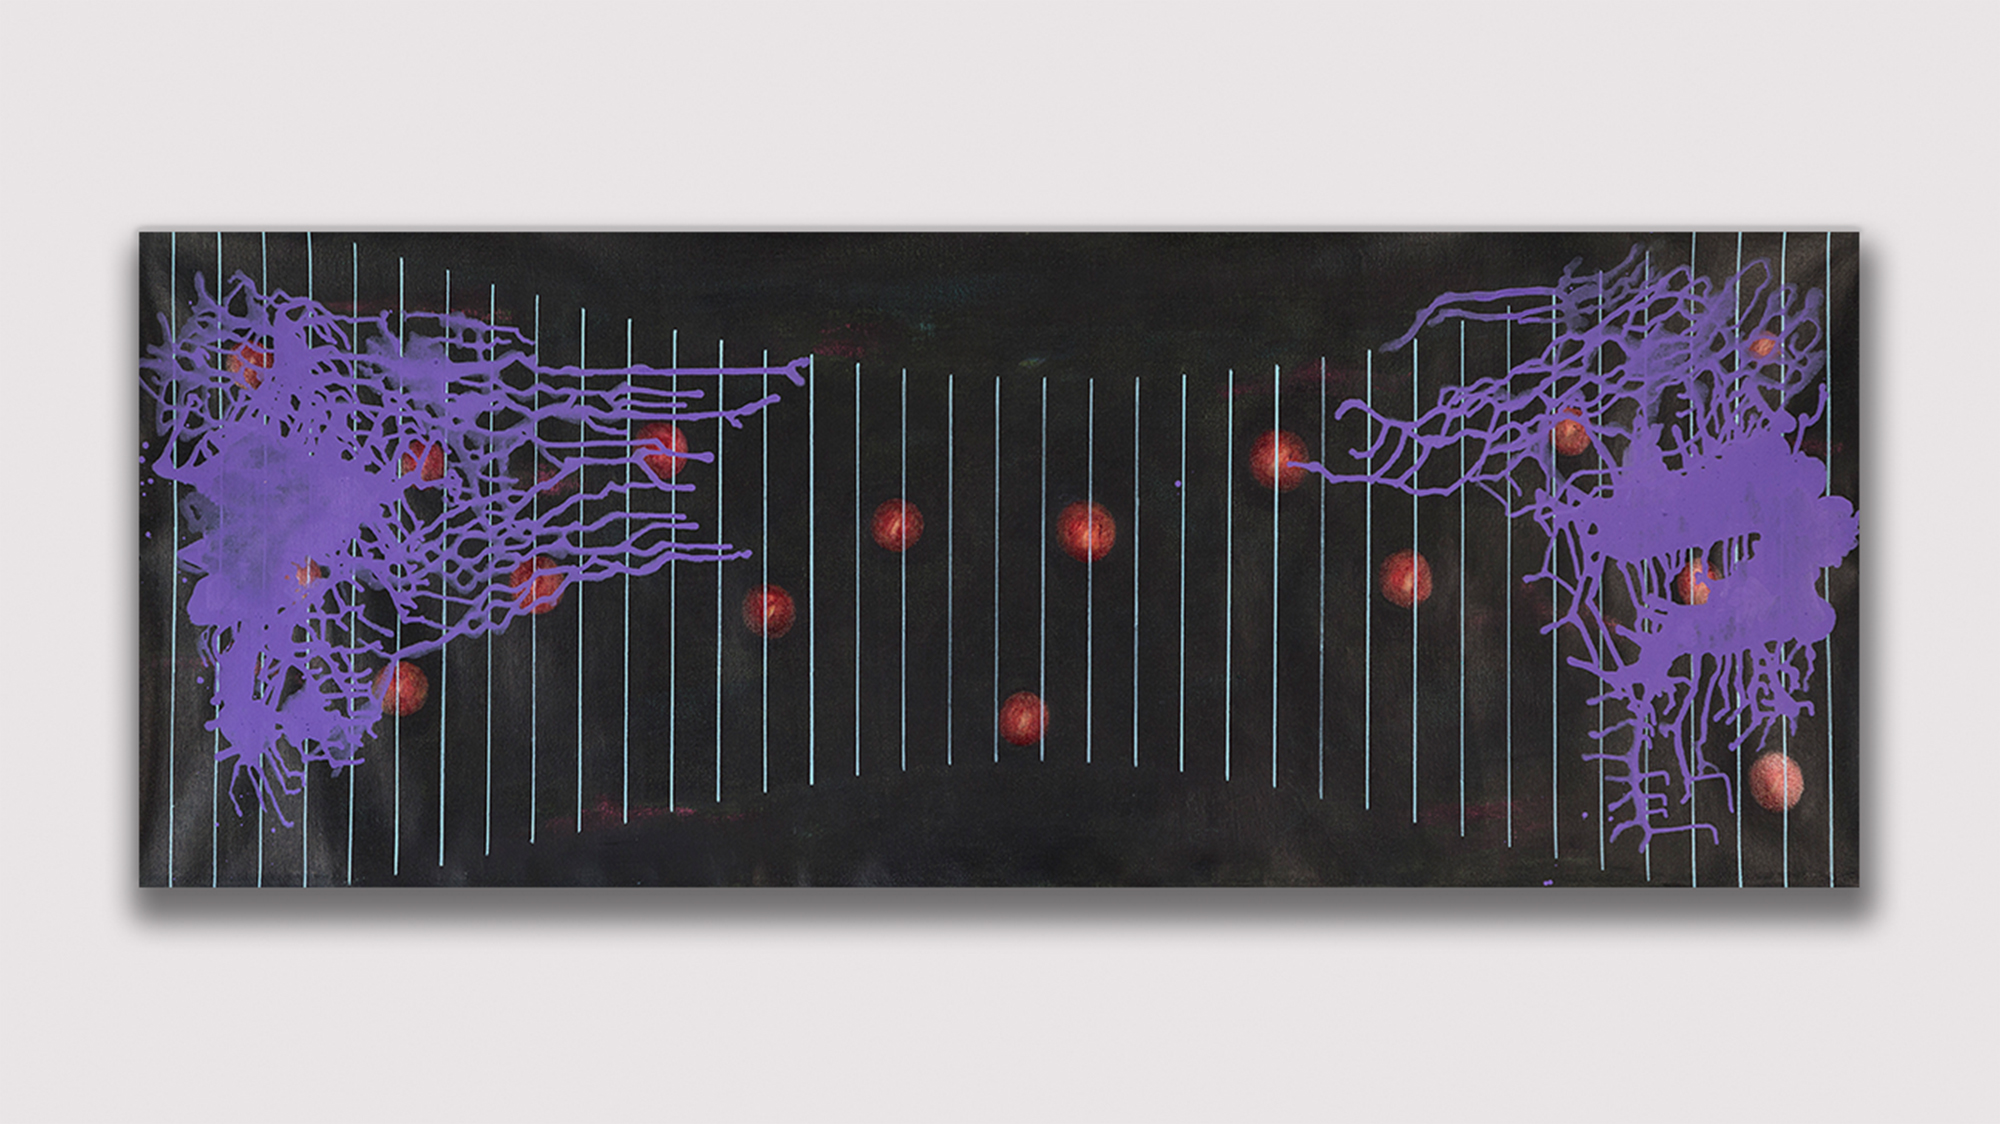 Satch Hoyt  -  Afro-Sonic Map (Black Mapping) , 2016 Acrylic on Linen 76.50h x 29.50w inches